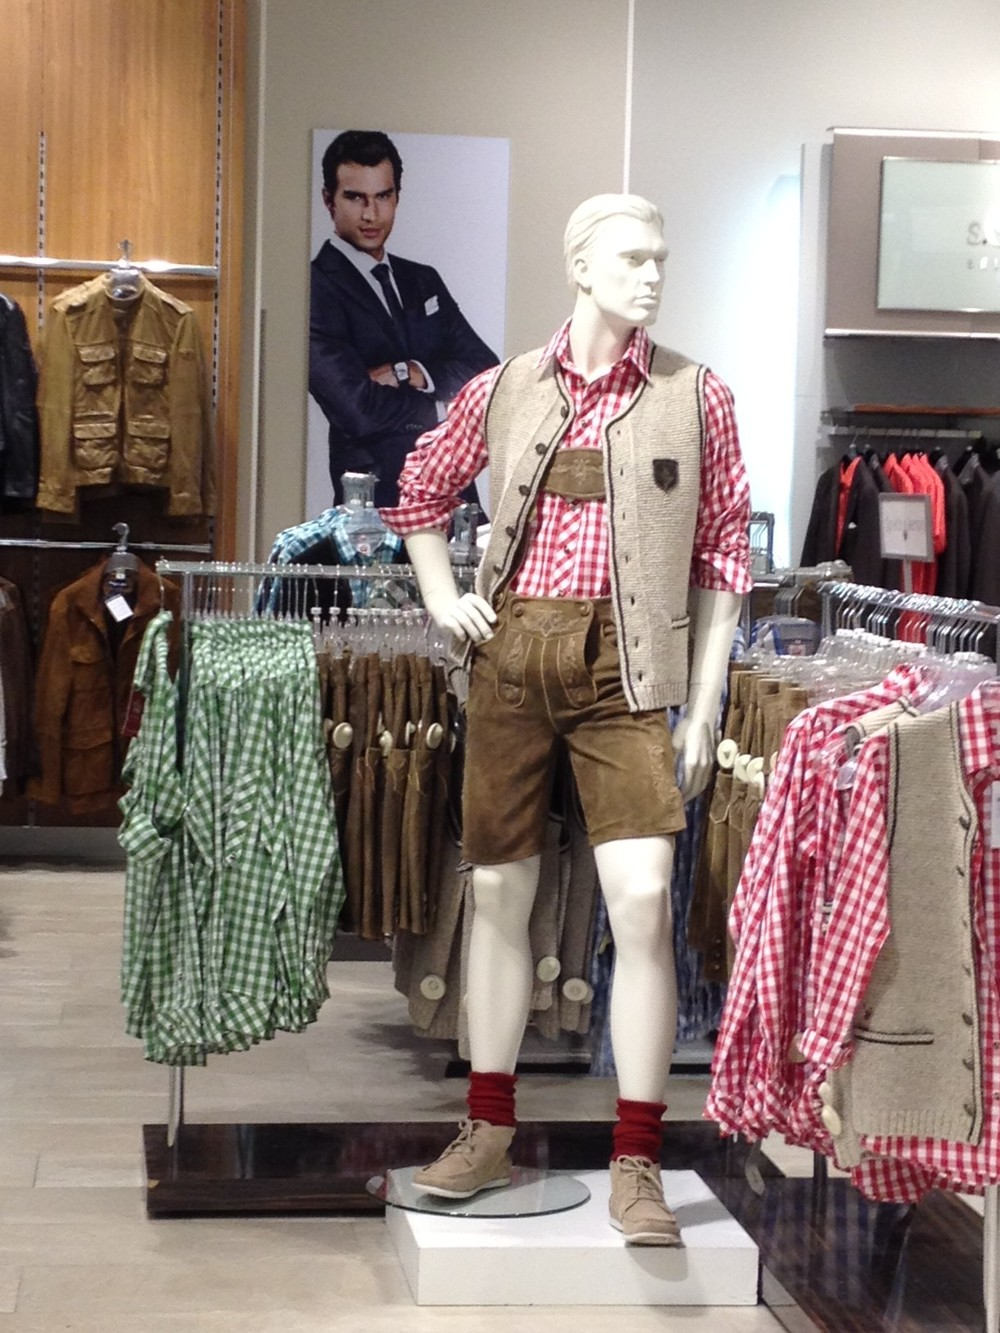 Lederhosen for Sale in Department Store - Savannah Page